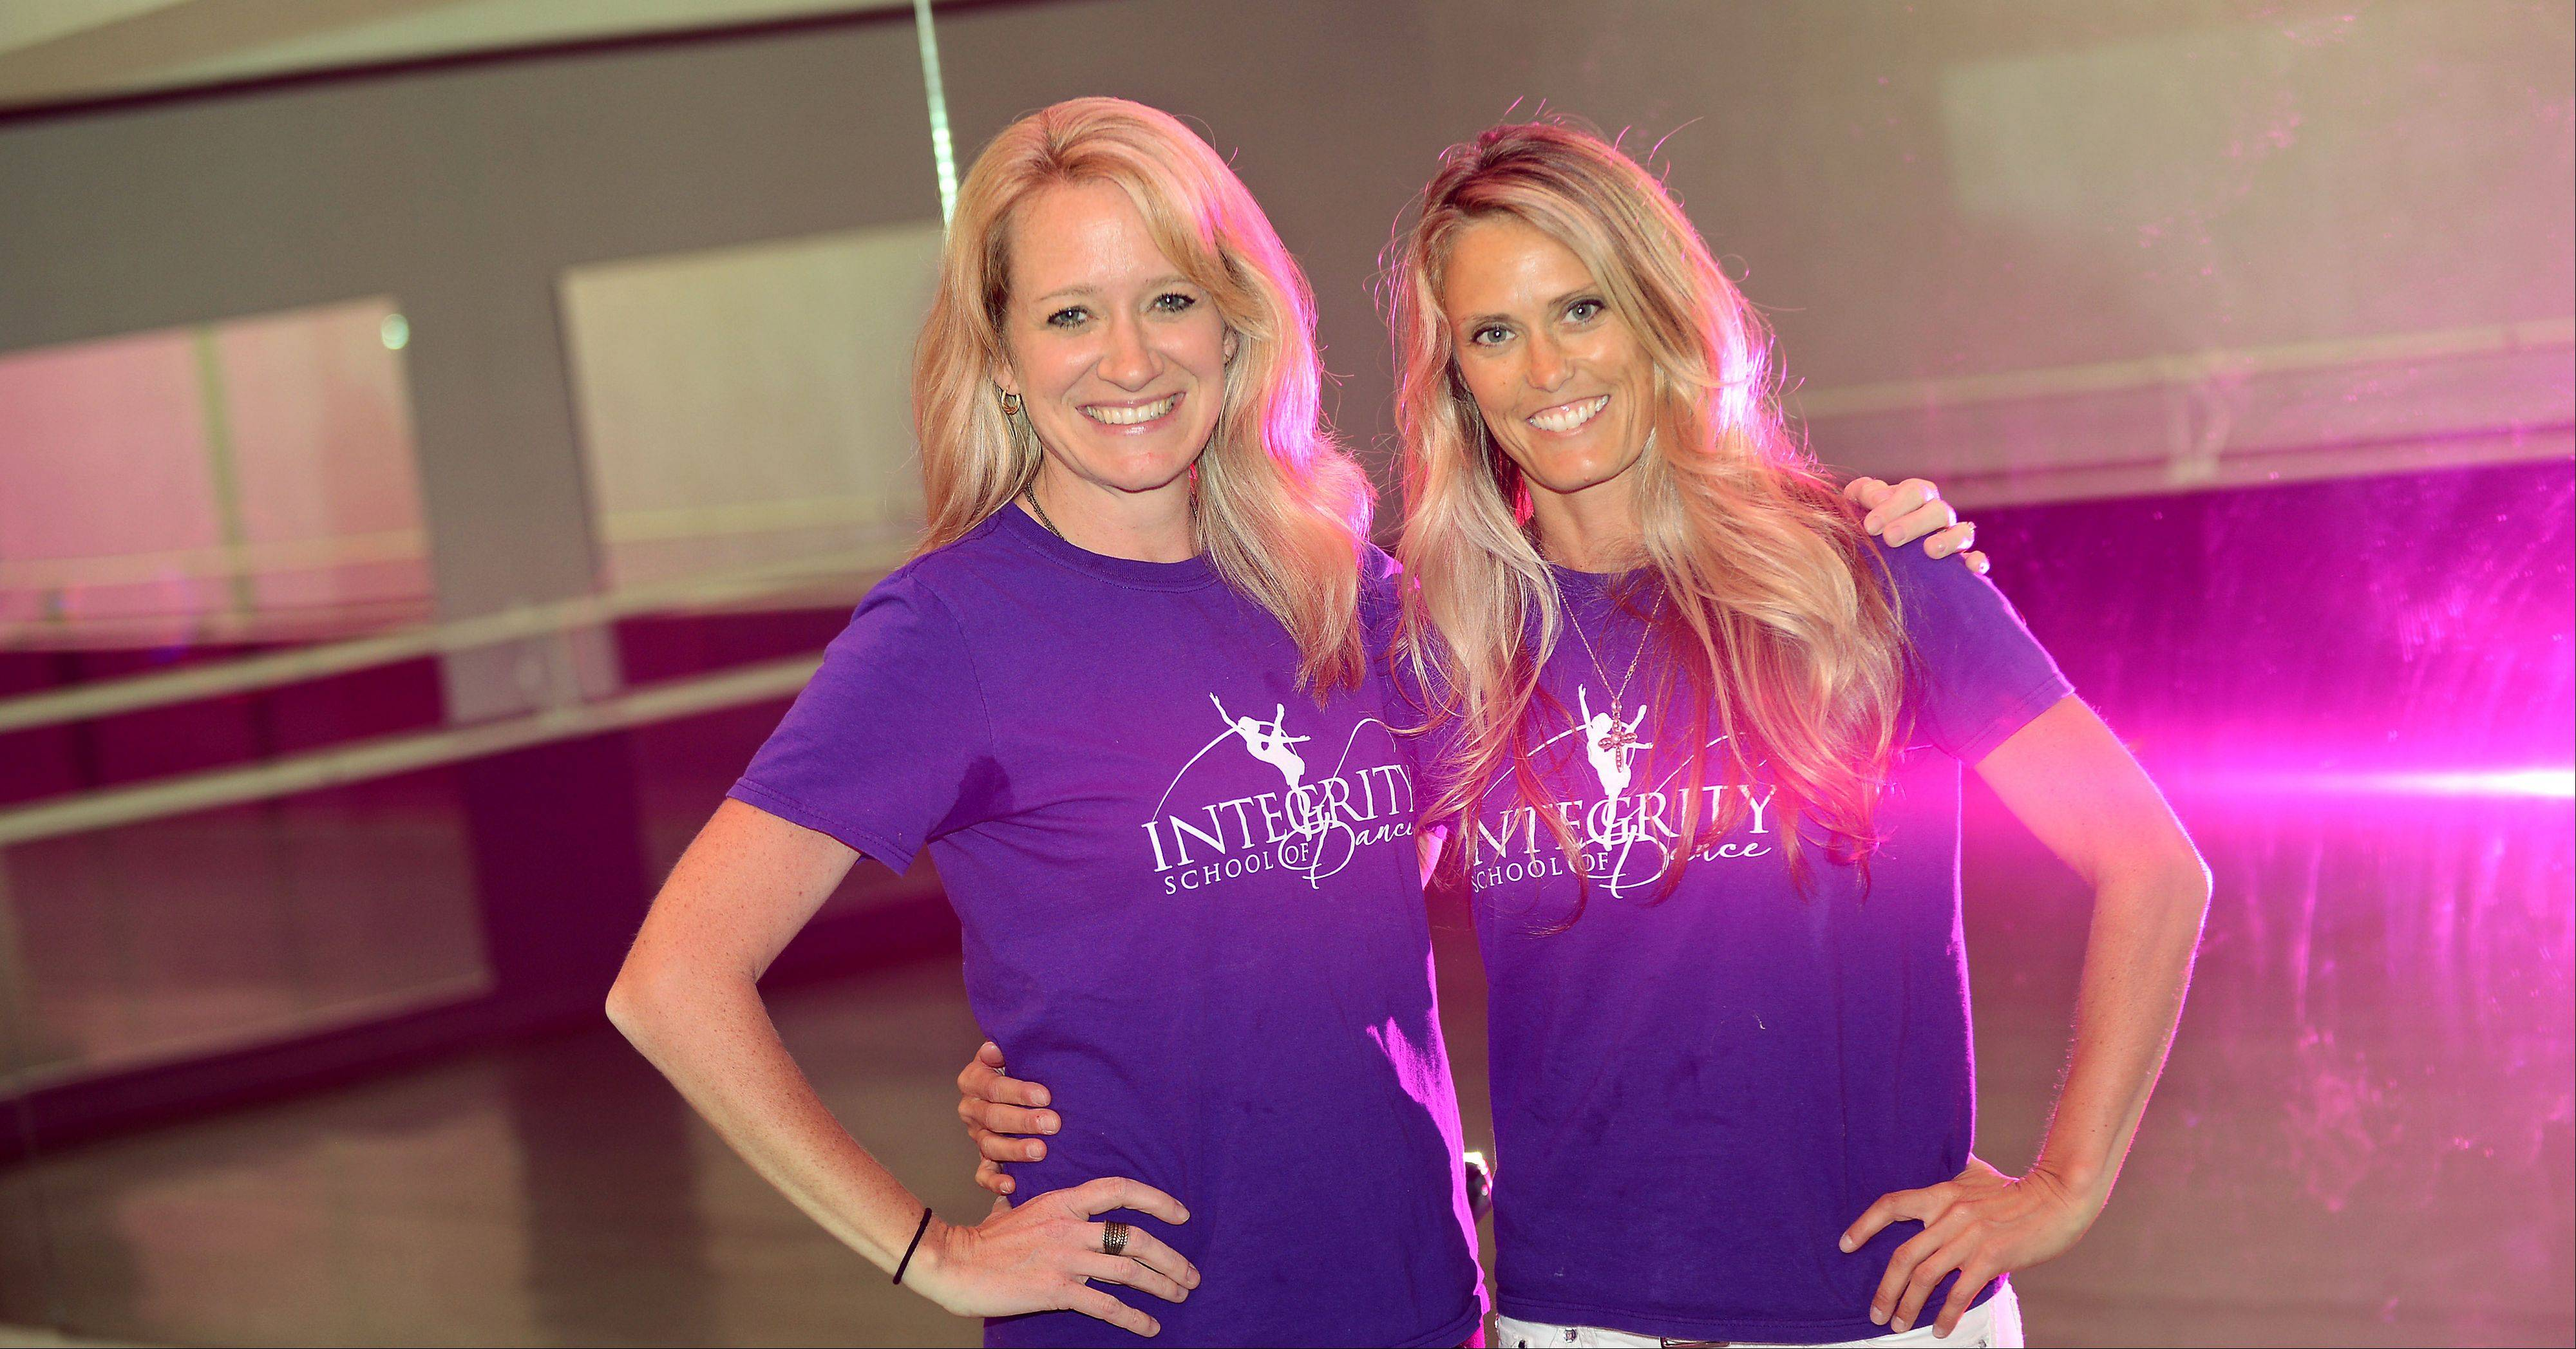 Kelly Hill, left, and Elisabeth Stonebreaker McCoy will host a grand opening for Integrity School of Dance in Elgin Sunday. The studio was formerly Gould Academy of Dance Arts, a longtime staple of Elgin�s artistic community. The two both taught there.